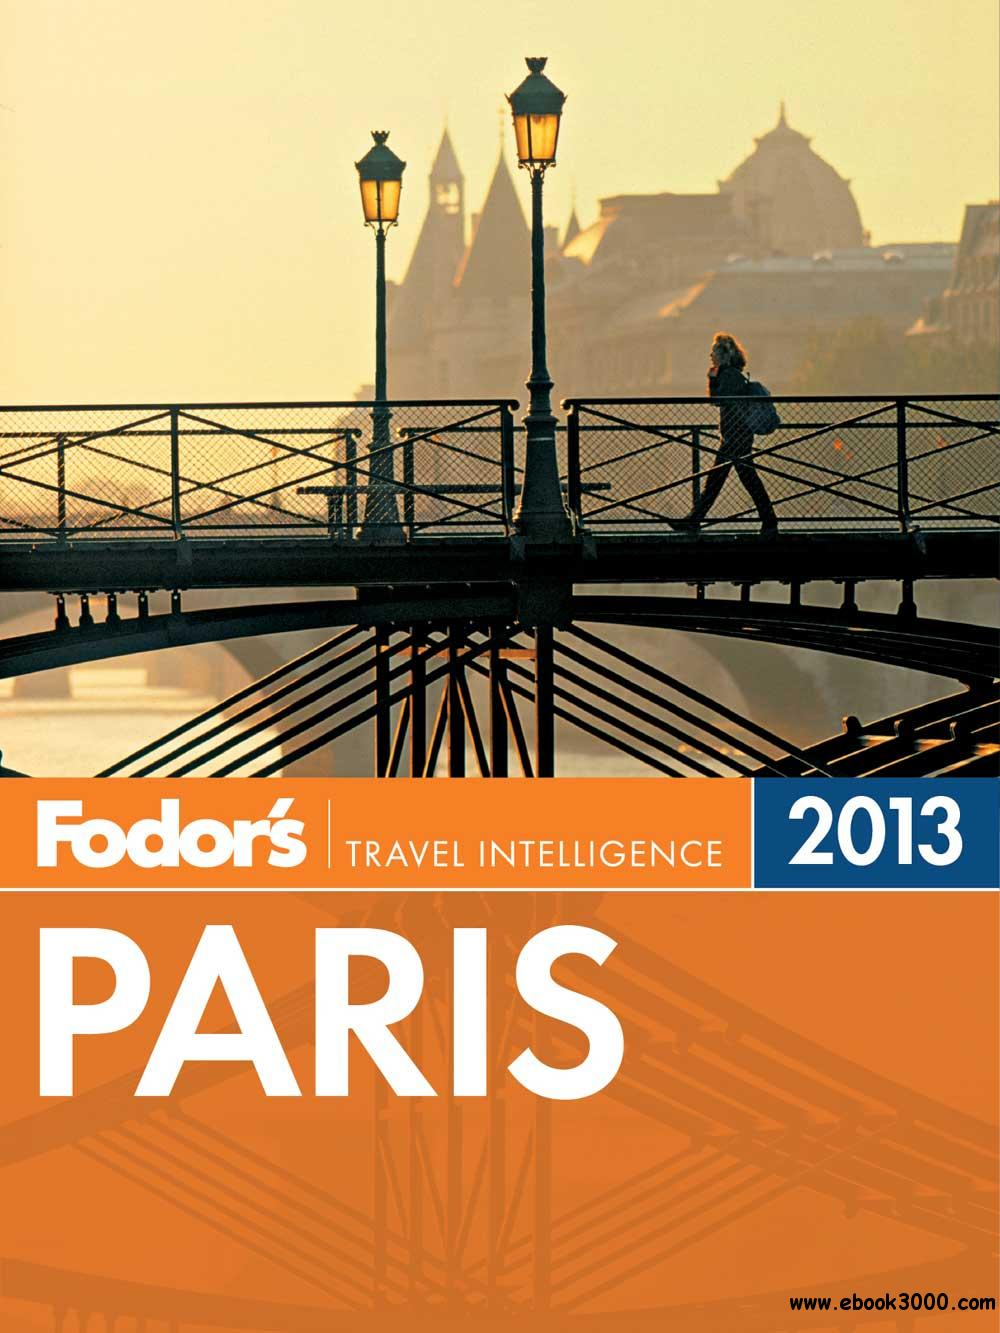 Fodor's Paris 2013 free download